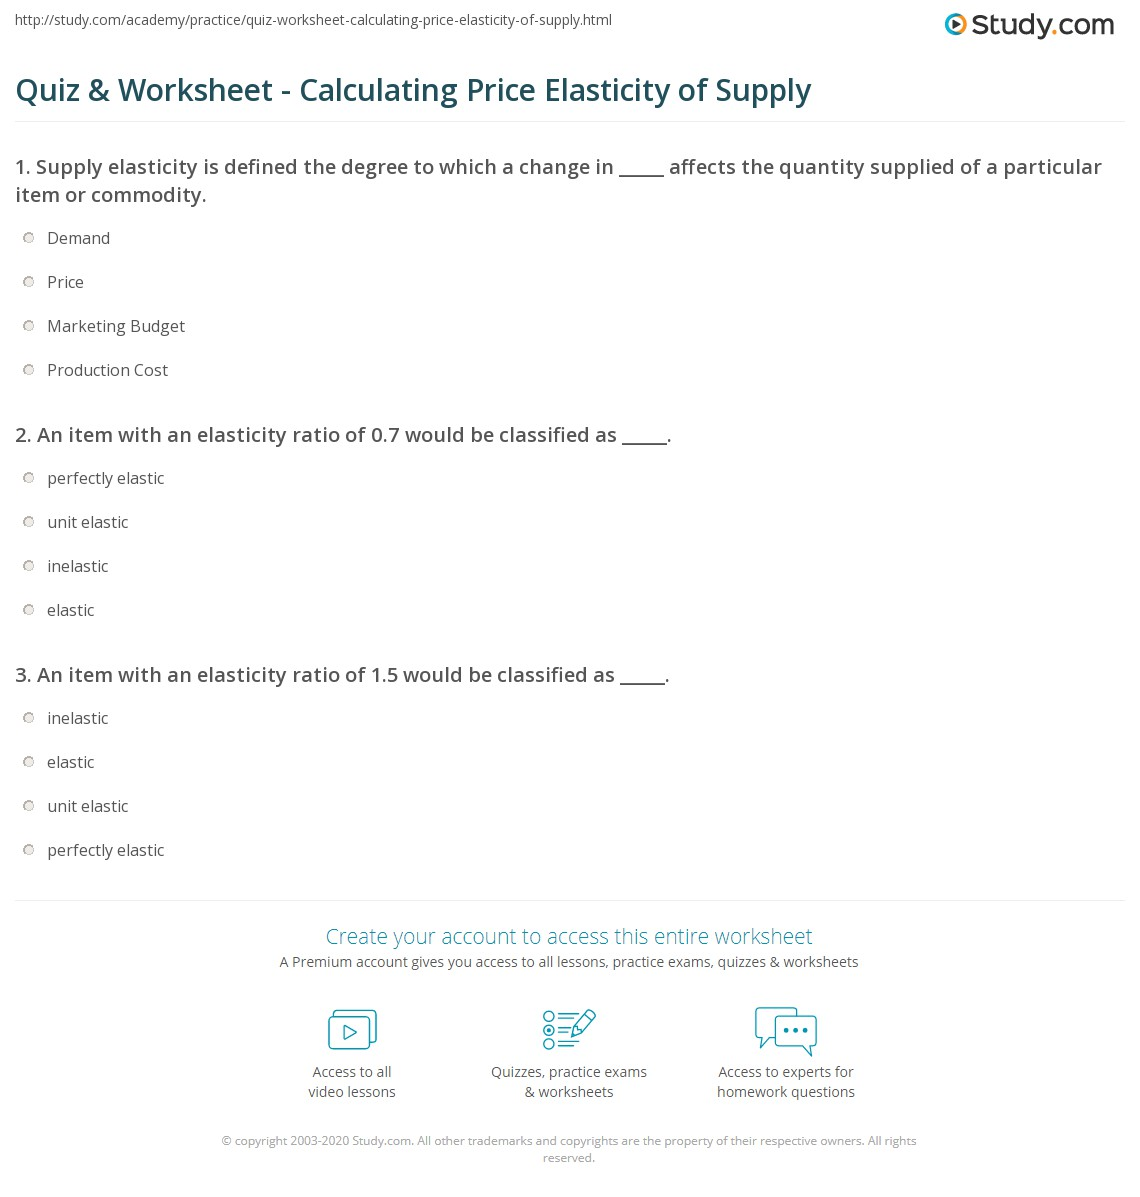 quiz worksheet calculating price elasticity of supply. Black Bedroom Furniture Sets. Home Design Ideas